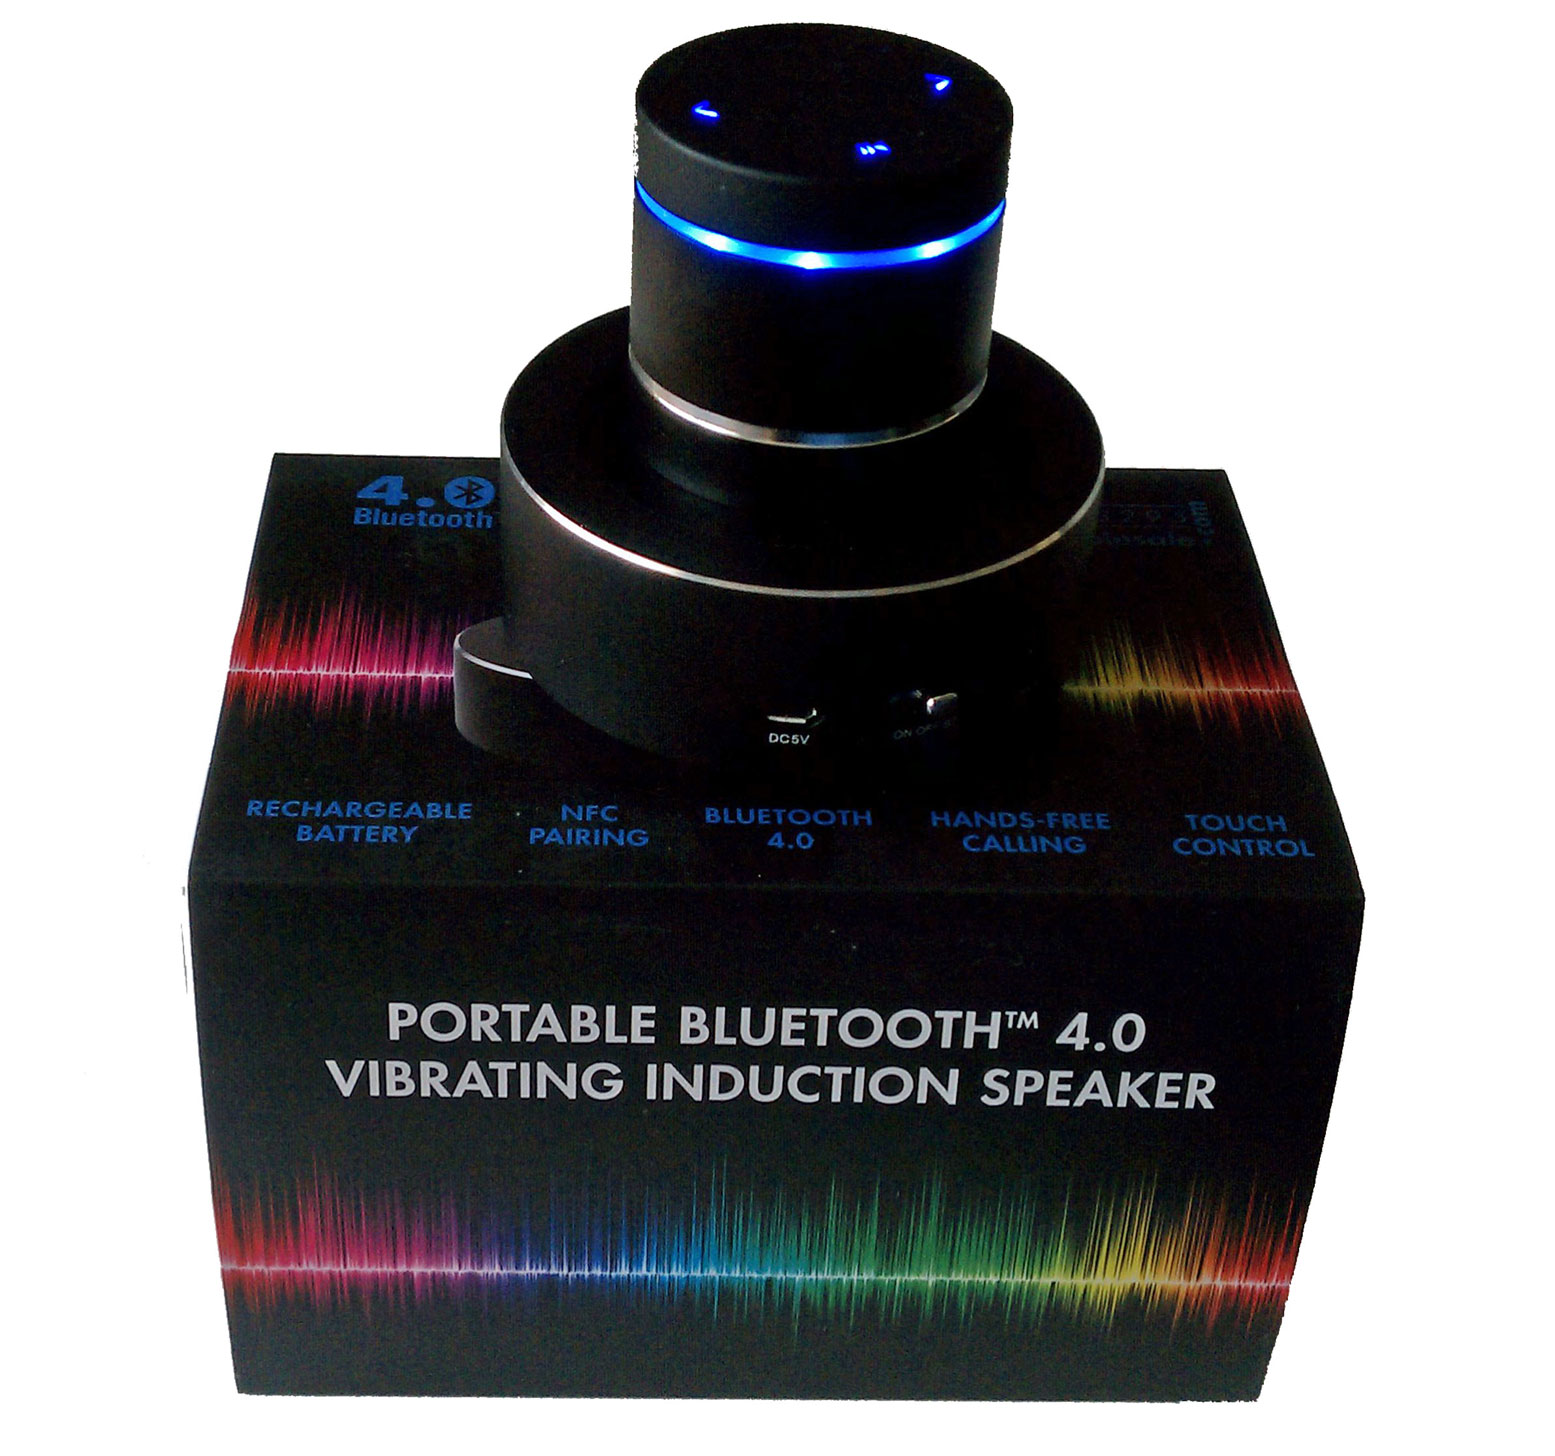 Bluetooth 4.0 Portable Vibrating Induction Speaker